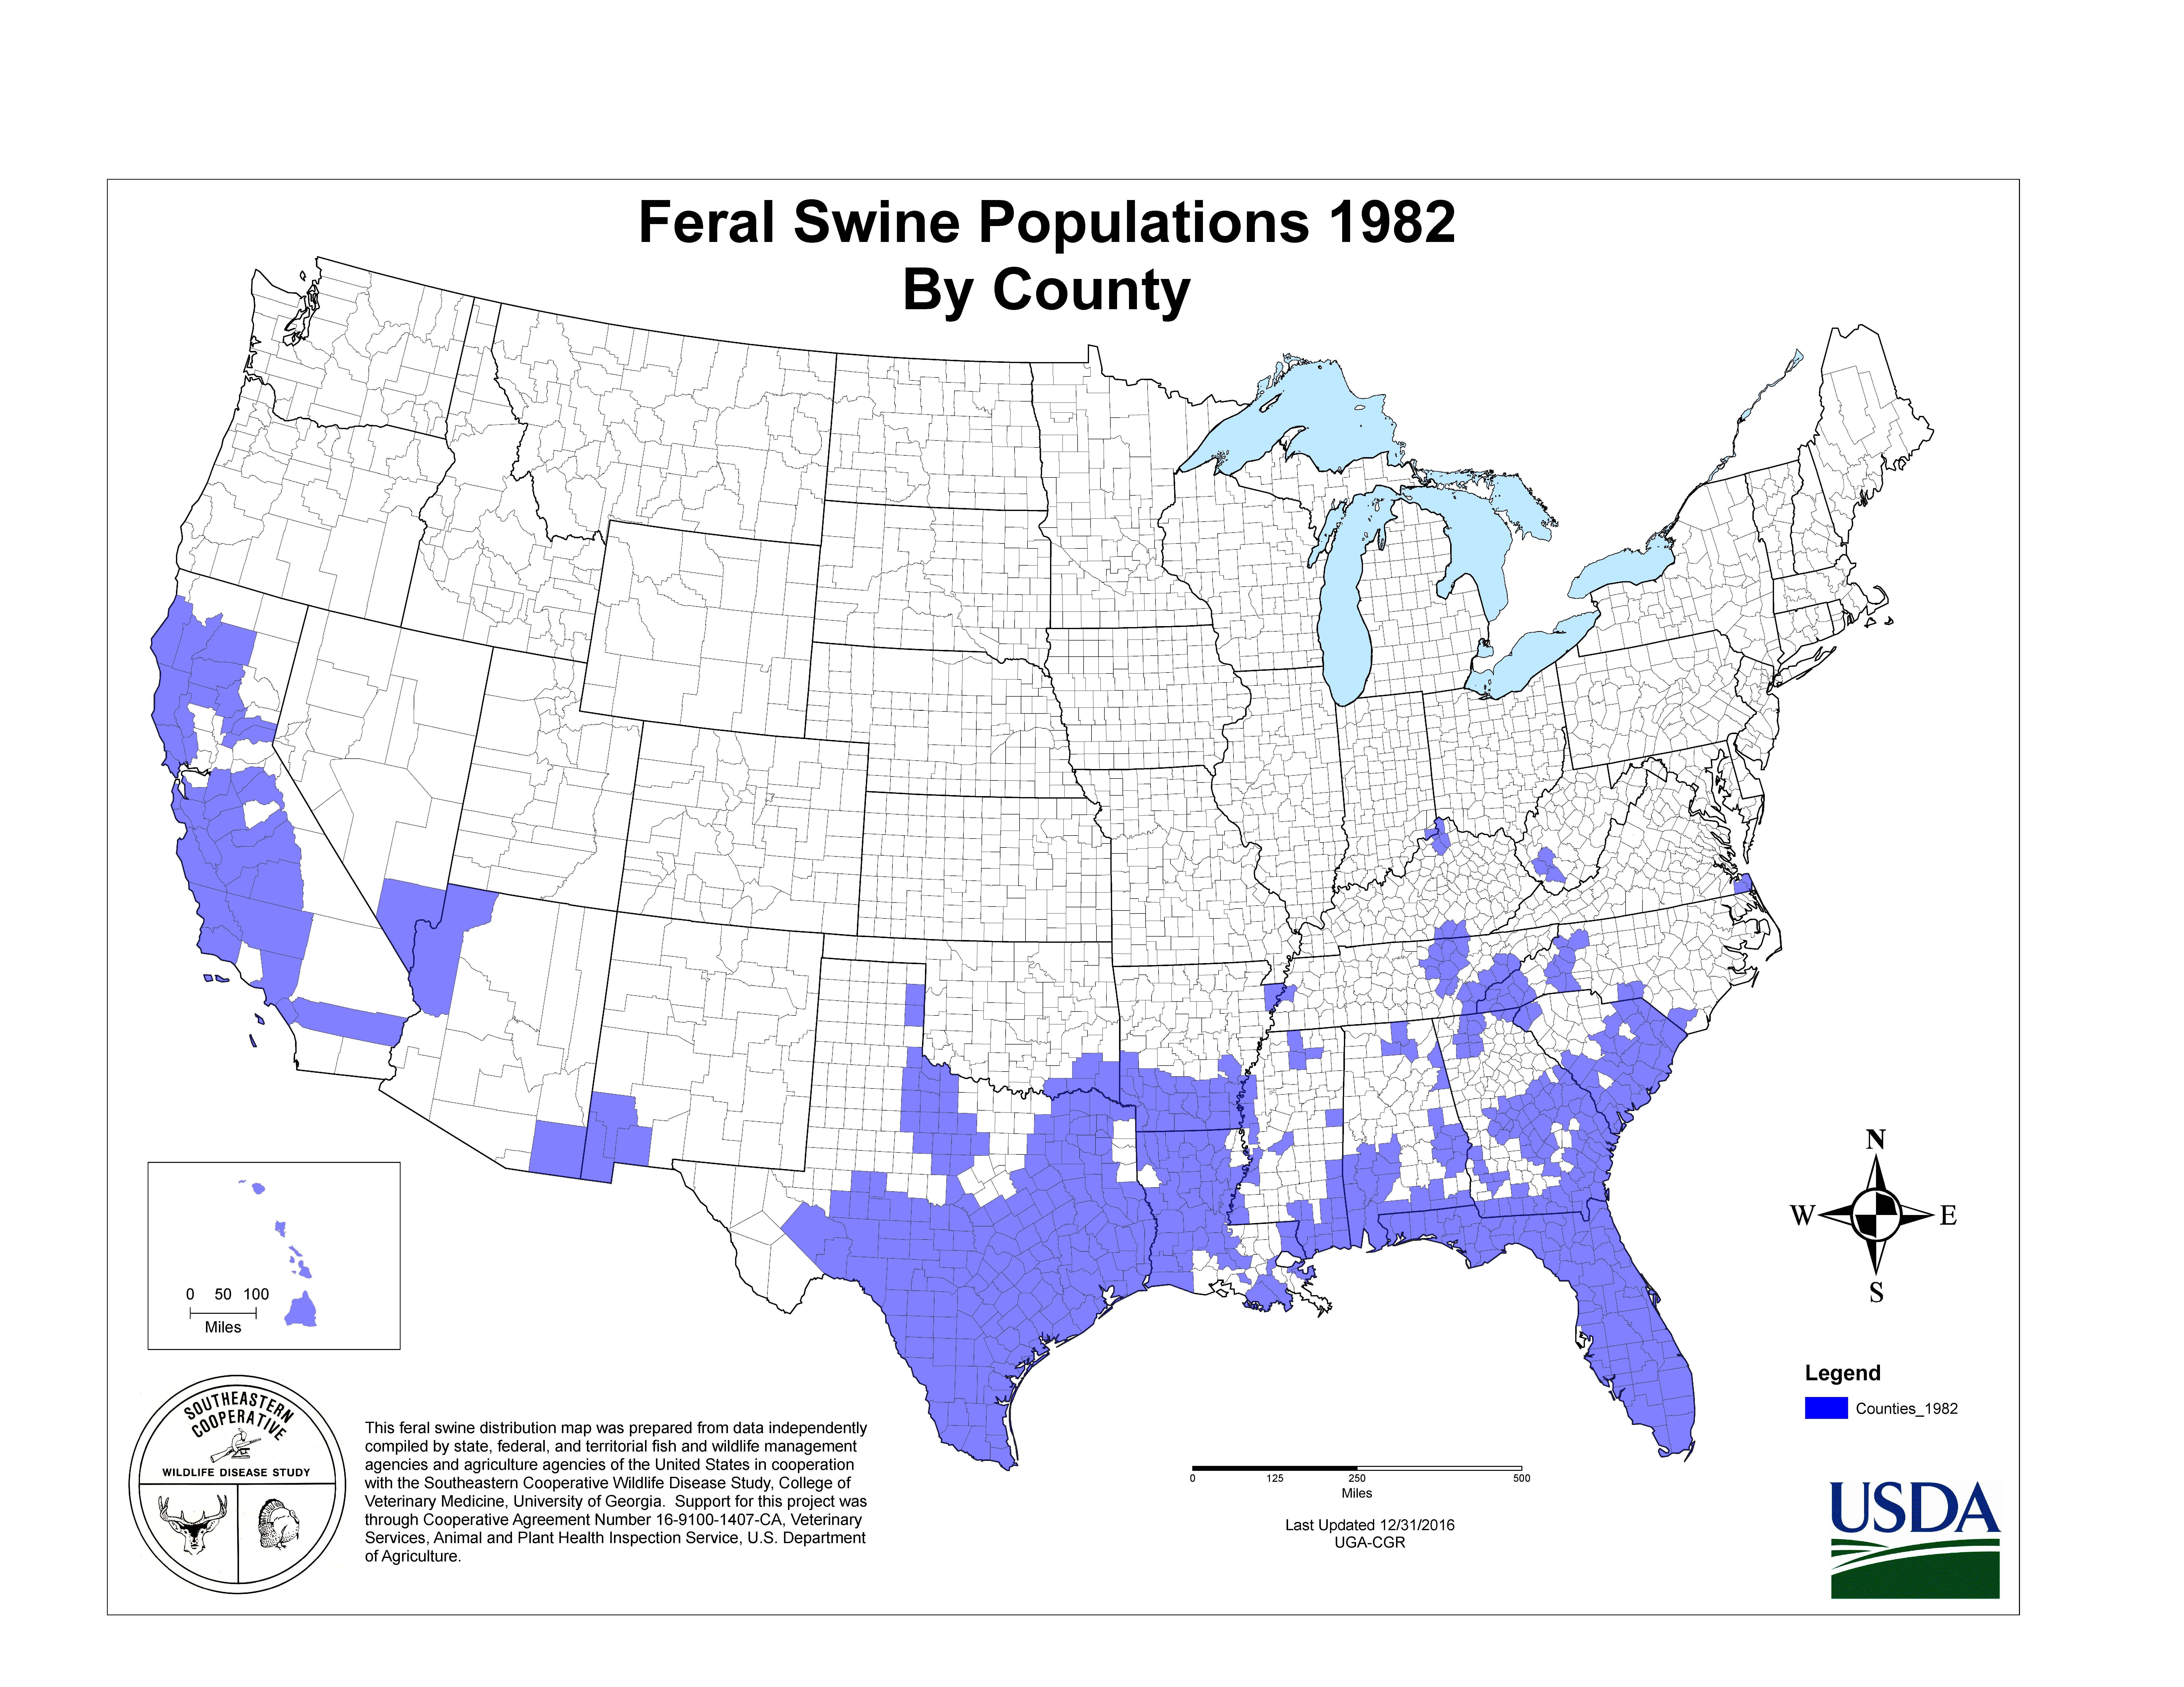 Us Wild Pig Population Map USDA APHIS | History of Feral Swine in the Americas